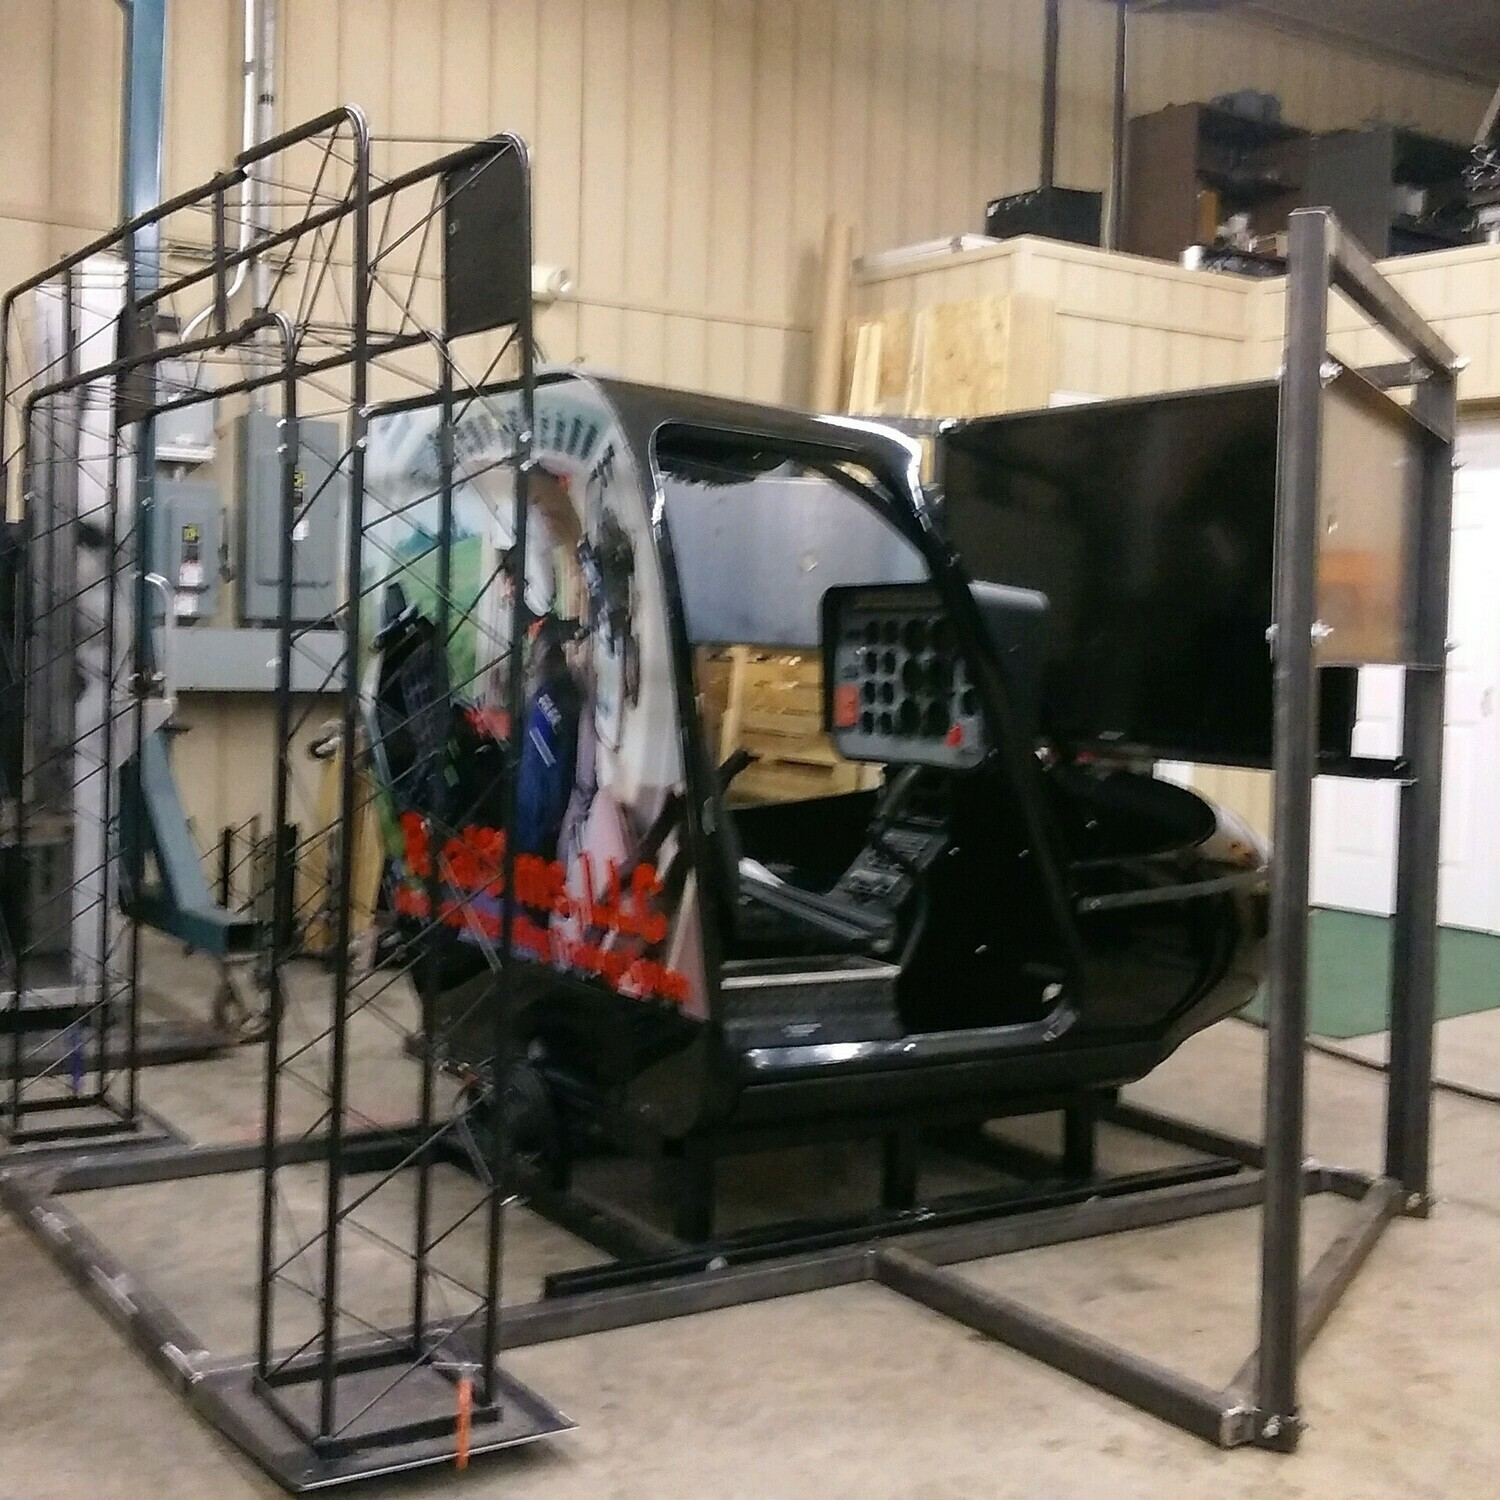 RealSims FasTrac ProSeries Bell 206B - Floor Based Helicopter Simulator